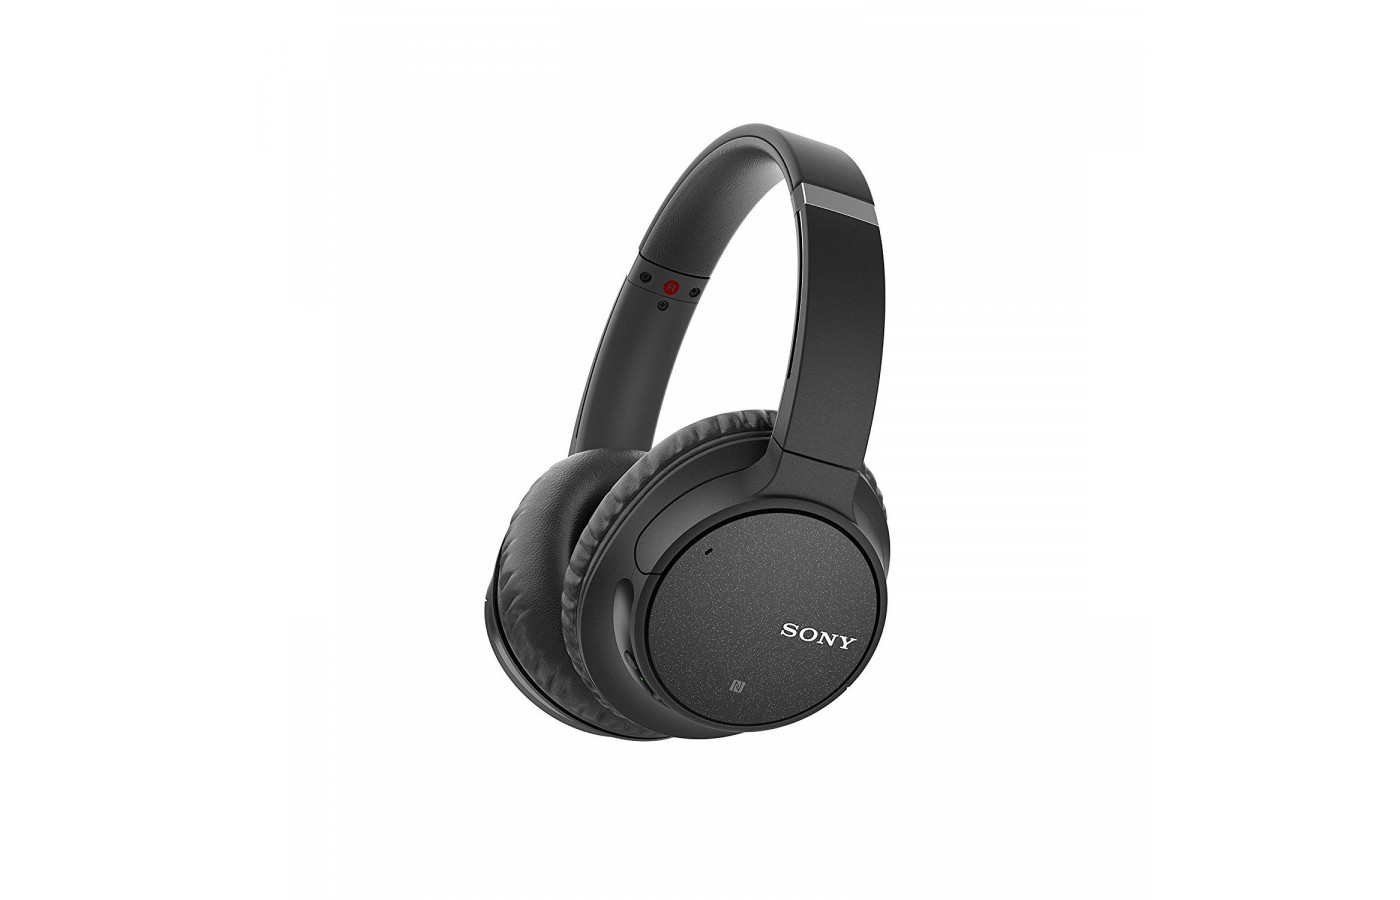 The Sony WH-CH700N offers noise cancellation technology for a clearer sound.